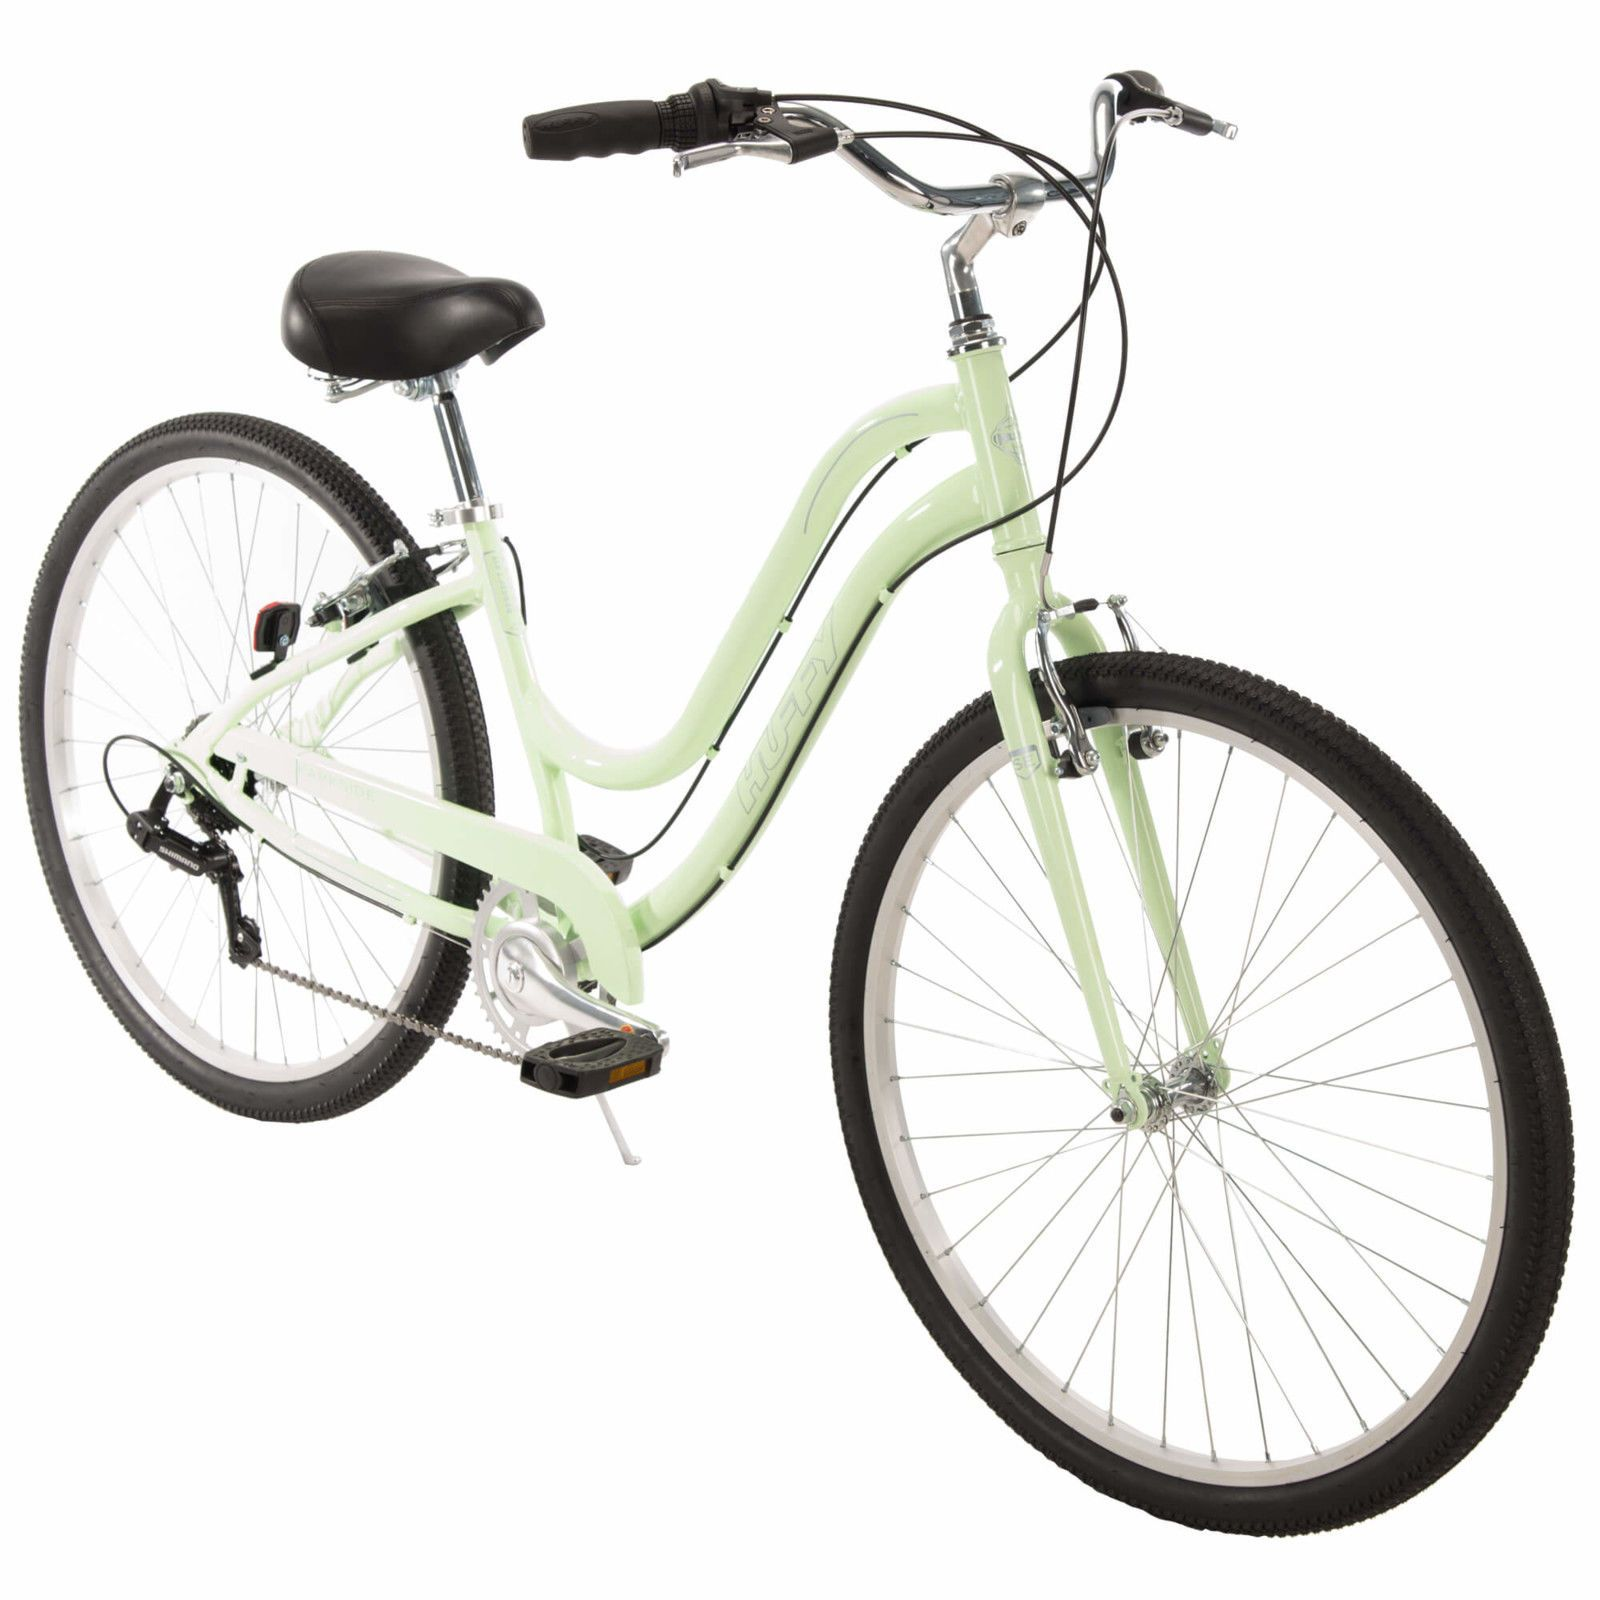 Huffy 275 bicycle comfort bike with perfect fit frame